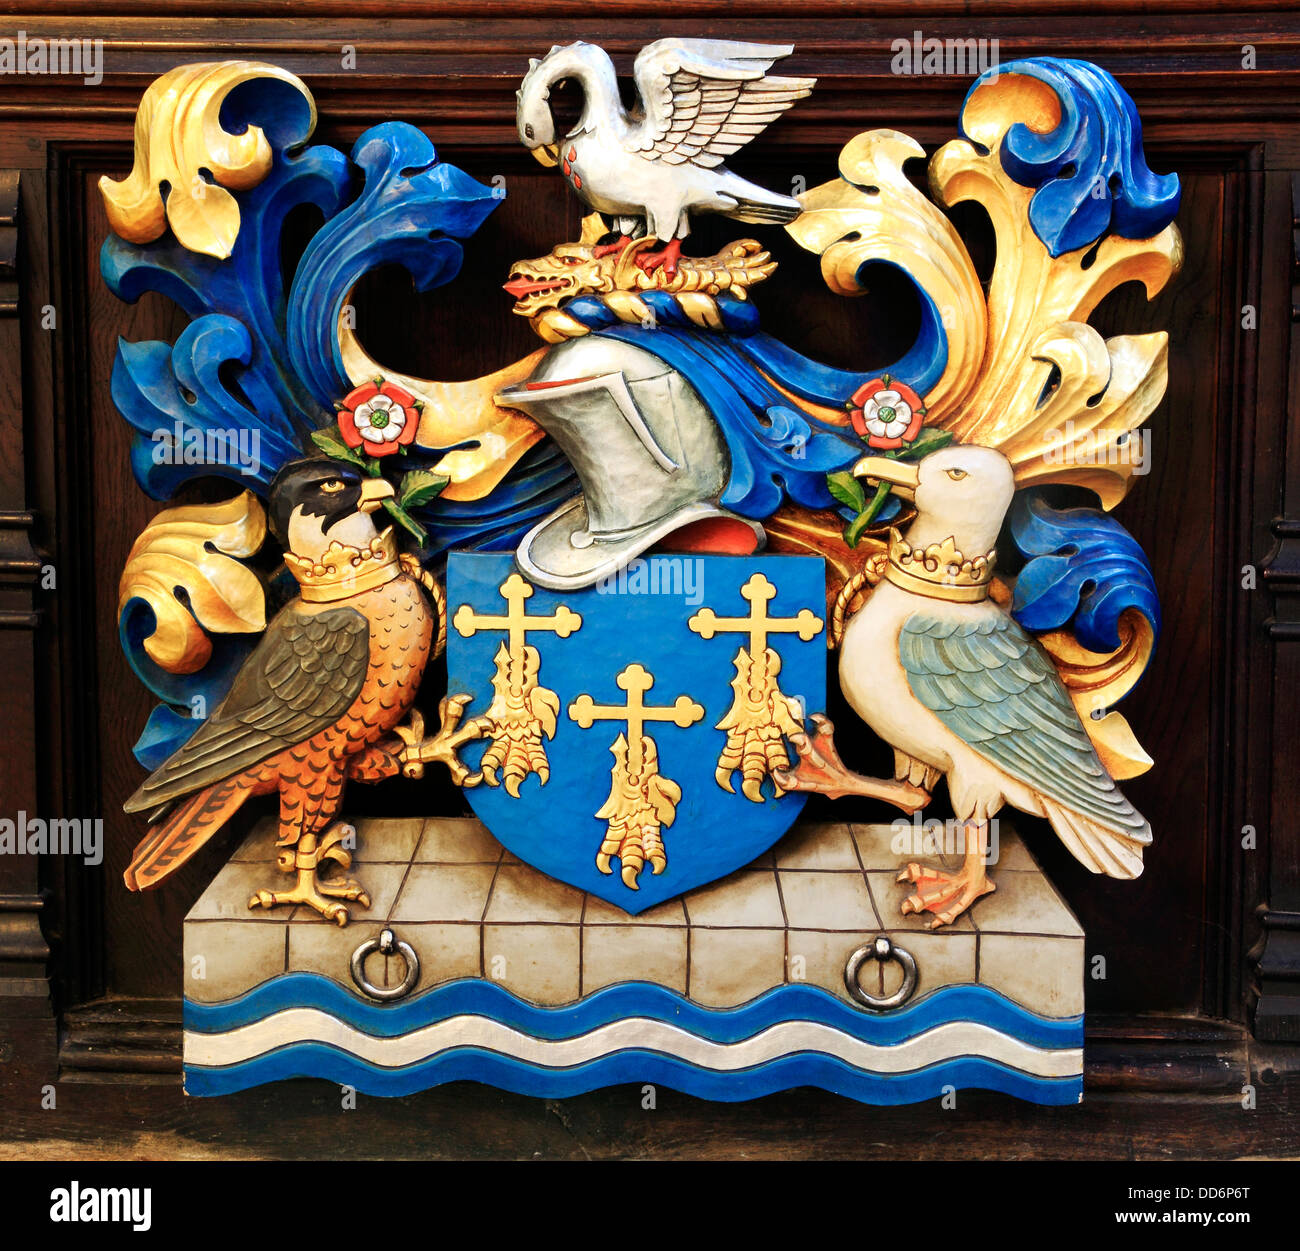 Kings Lynn, Town Coat of Arms, Norfolk, St Margarets Church, wooden panel, Norfolk, England English towns coats - Stock Image